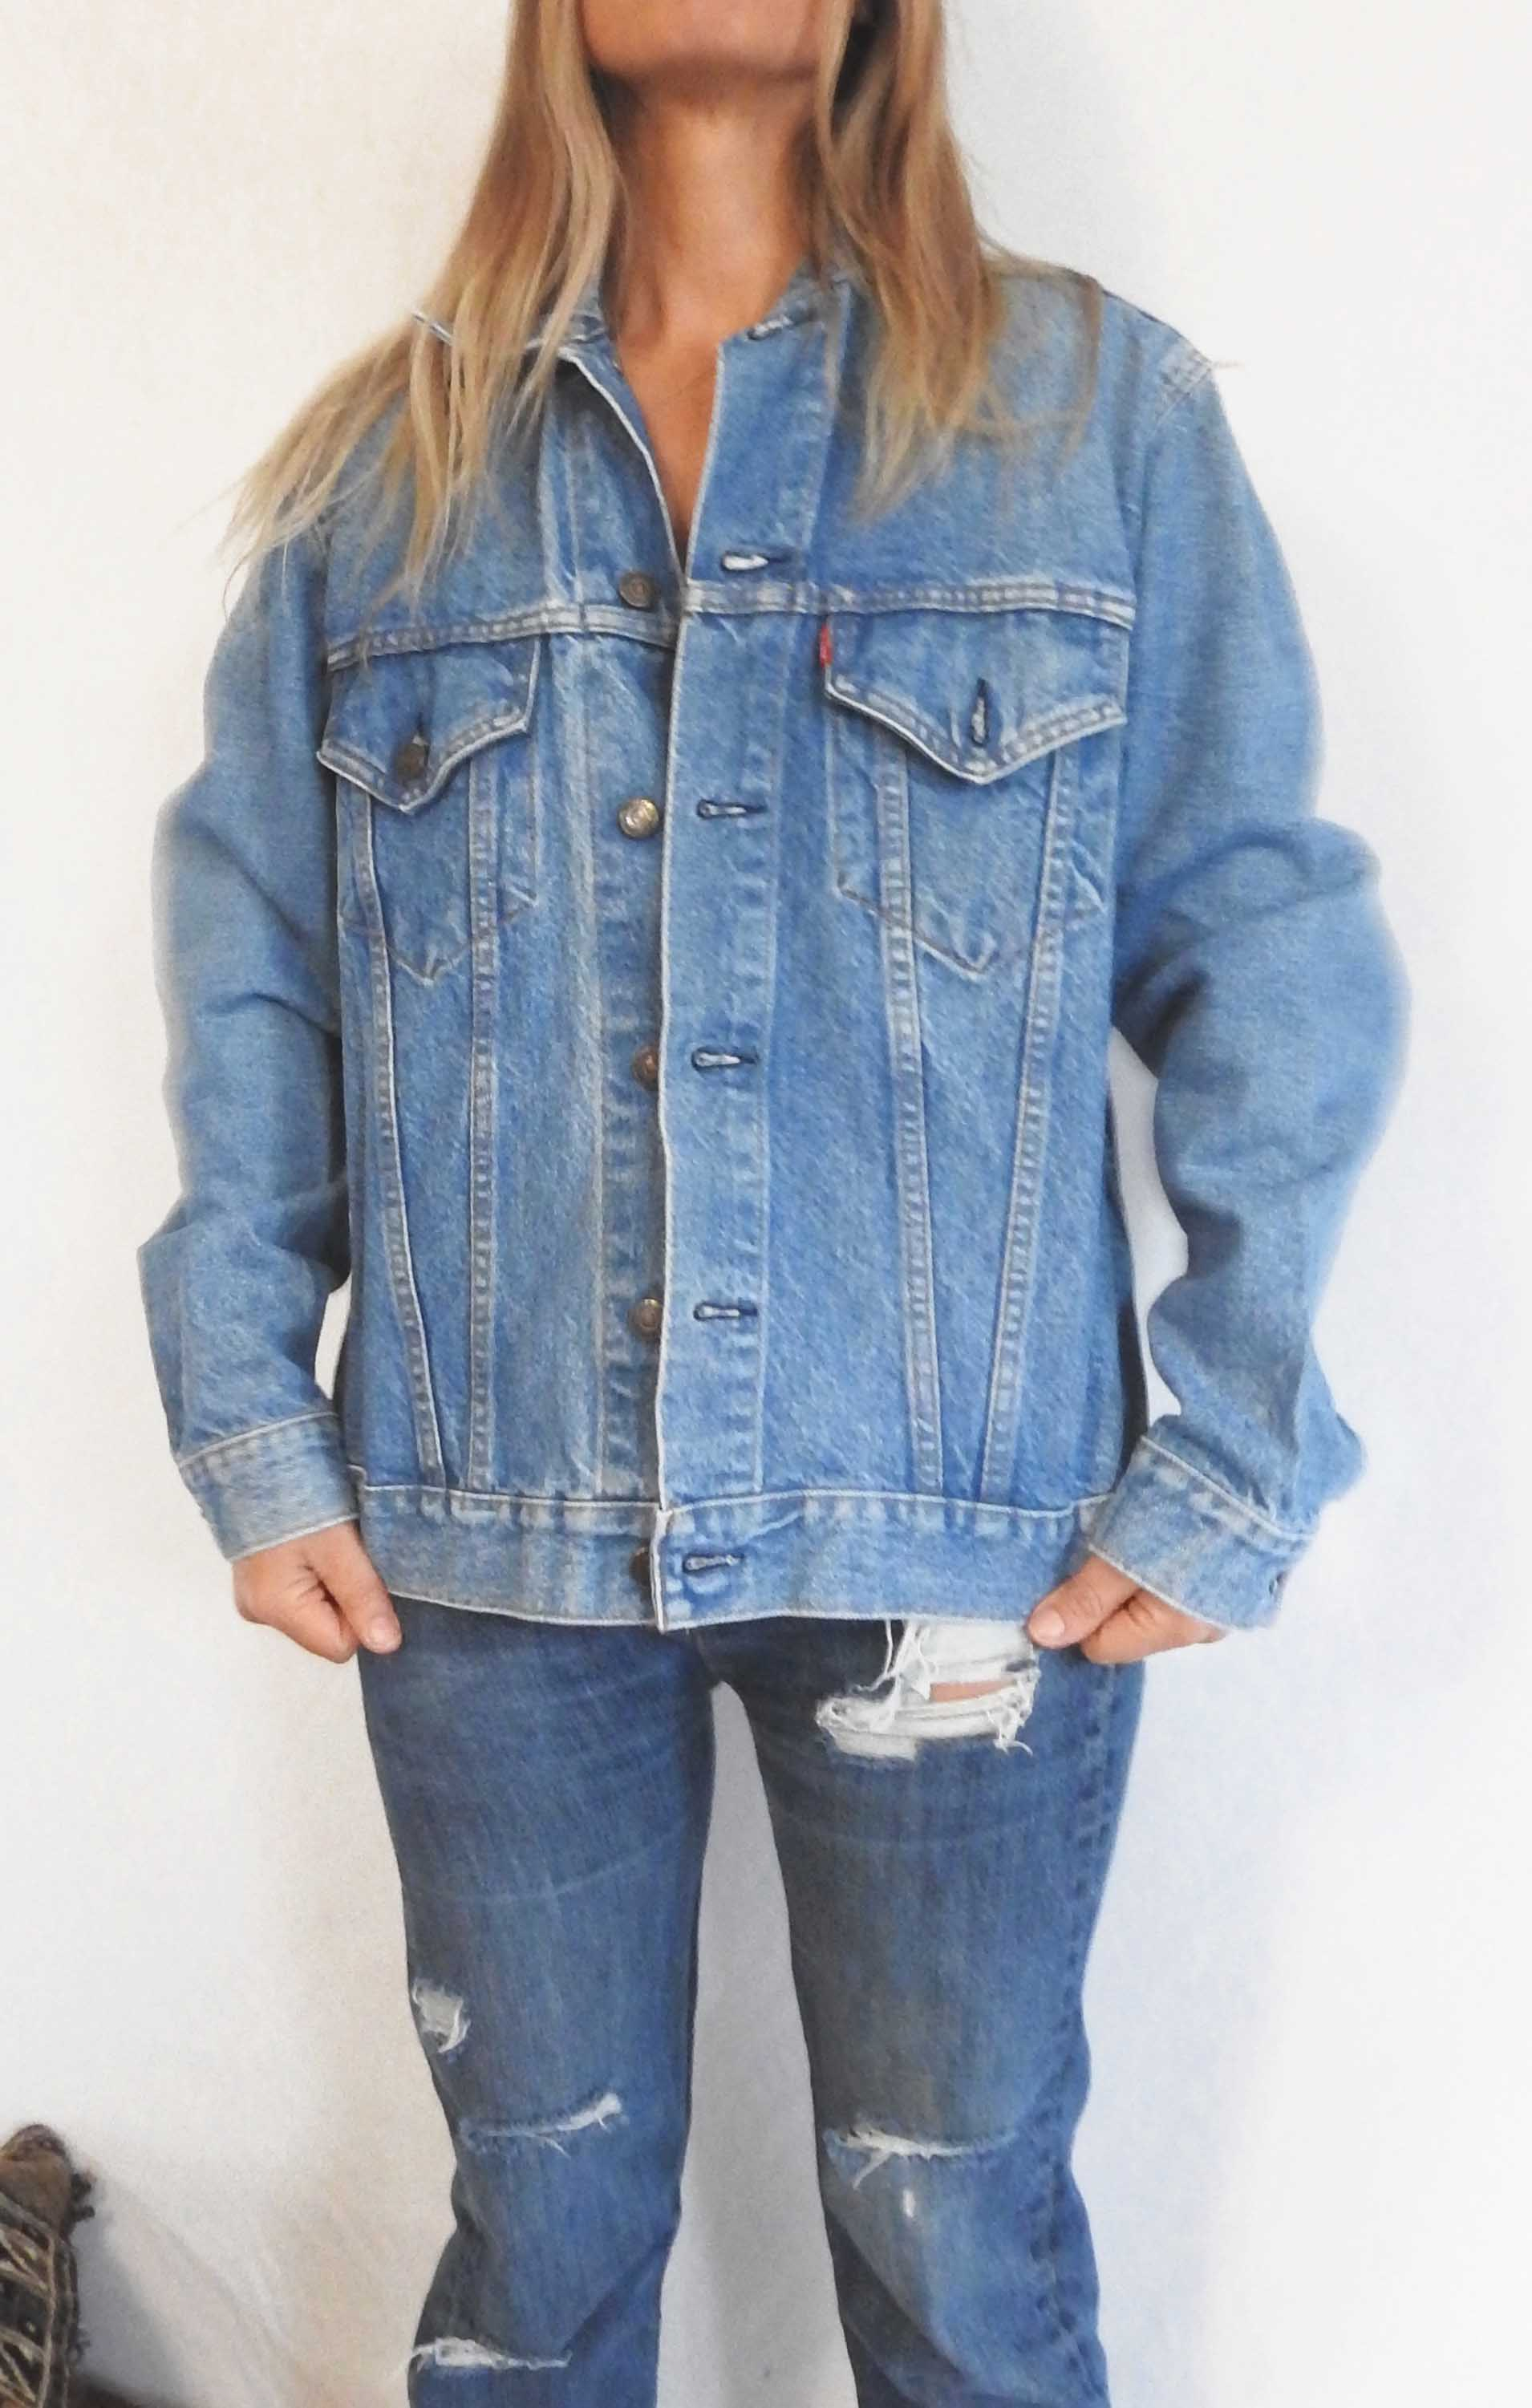 Denim Jacket 1 VINTAGE LEVIS MEN'S DENIM JACKET